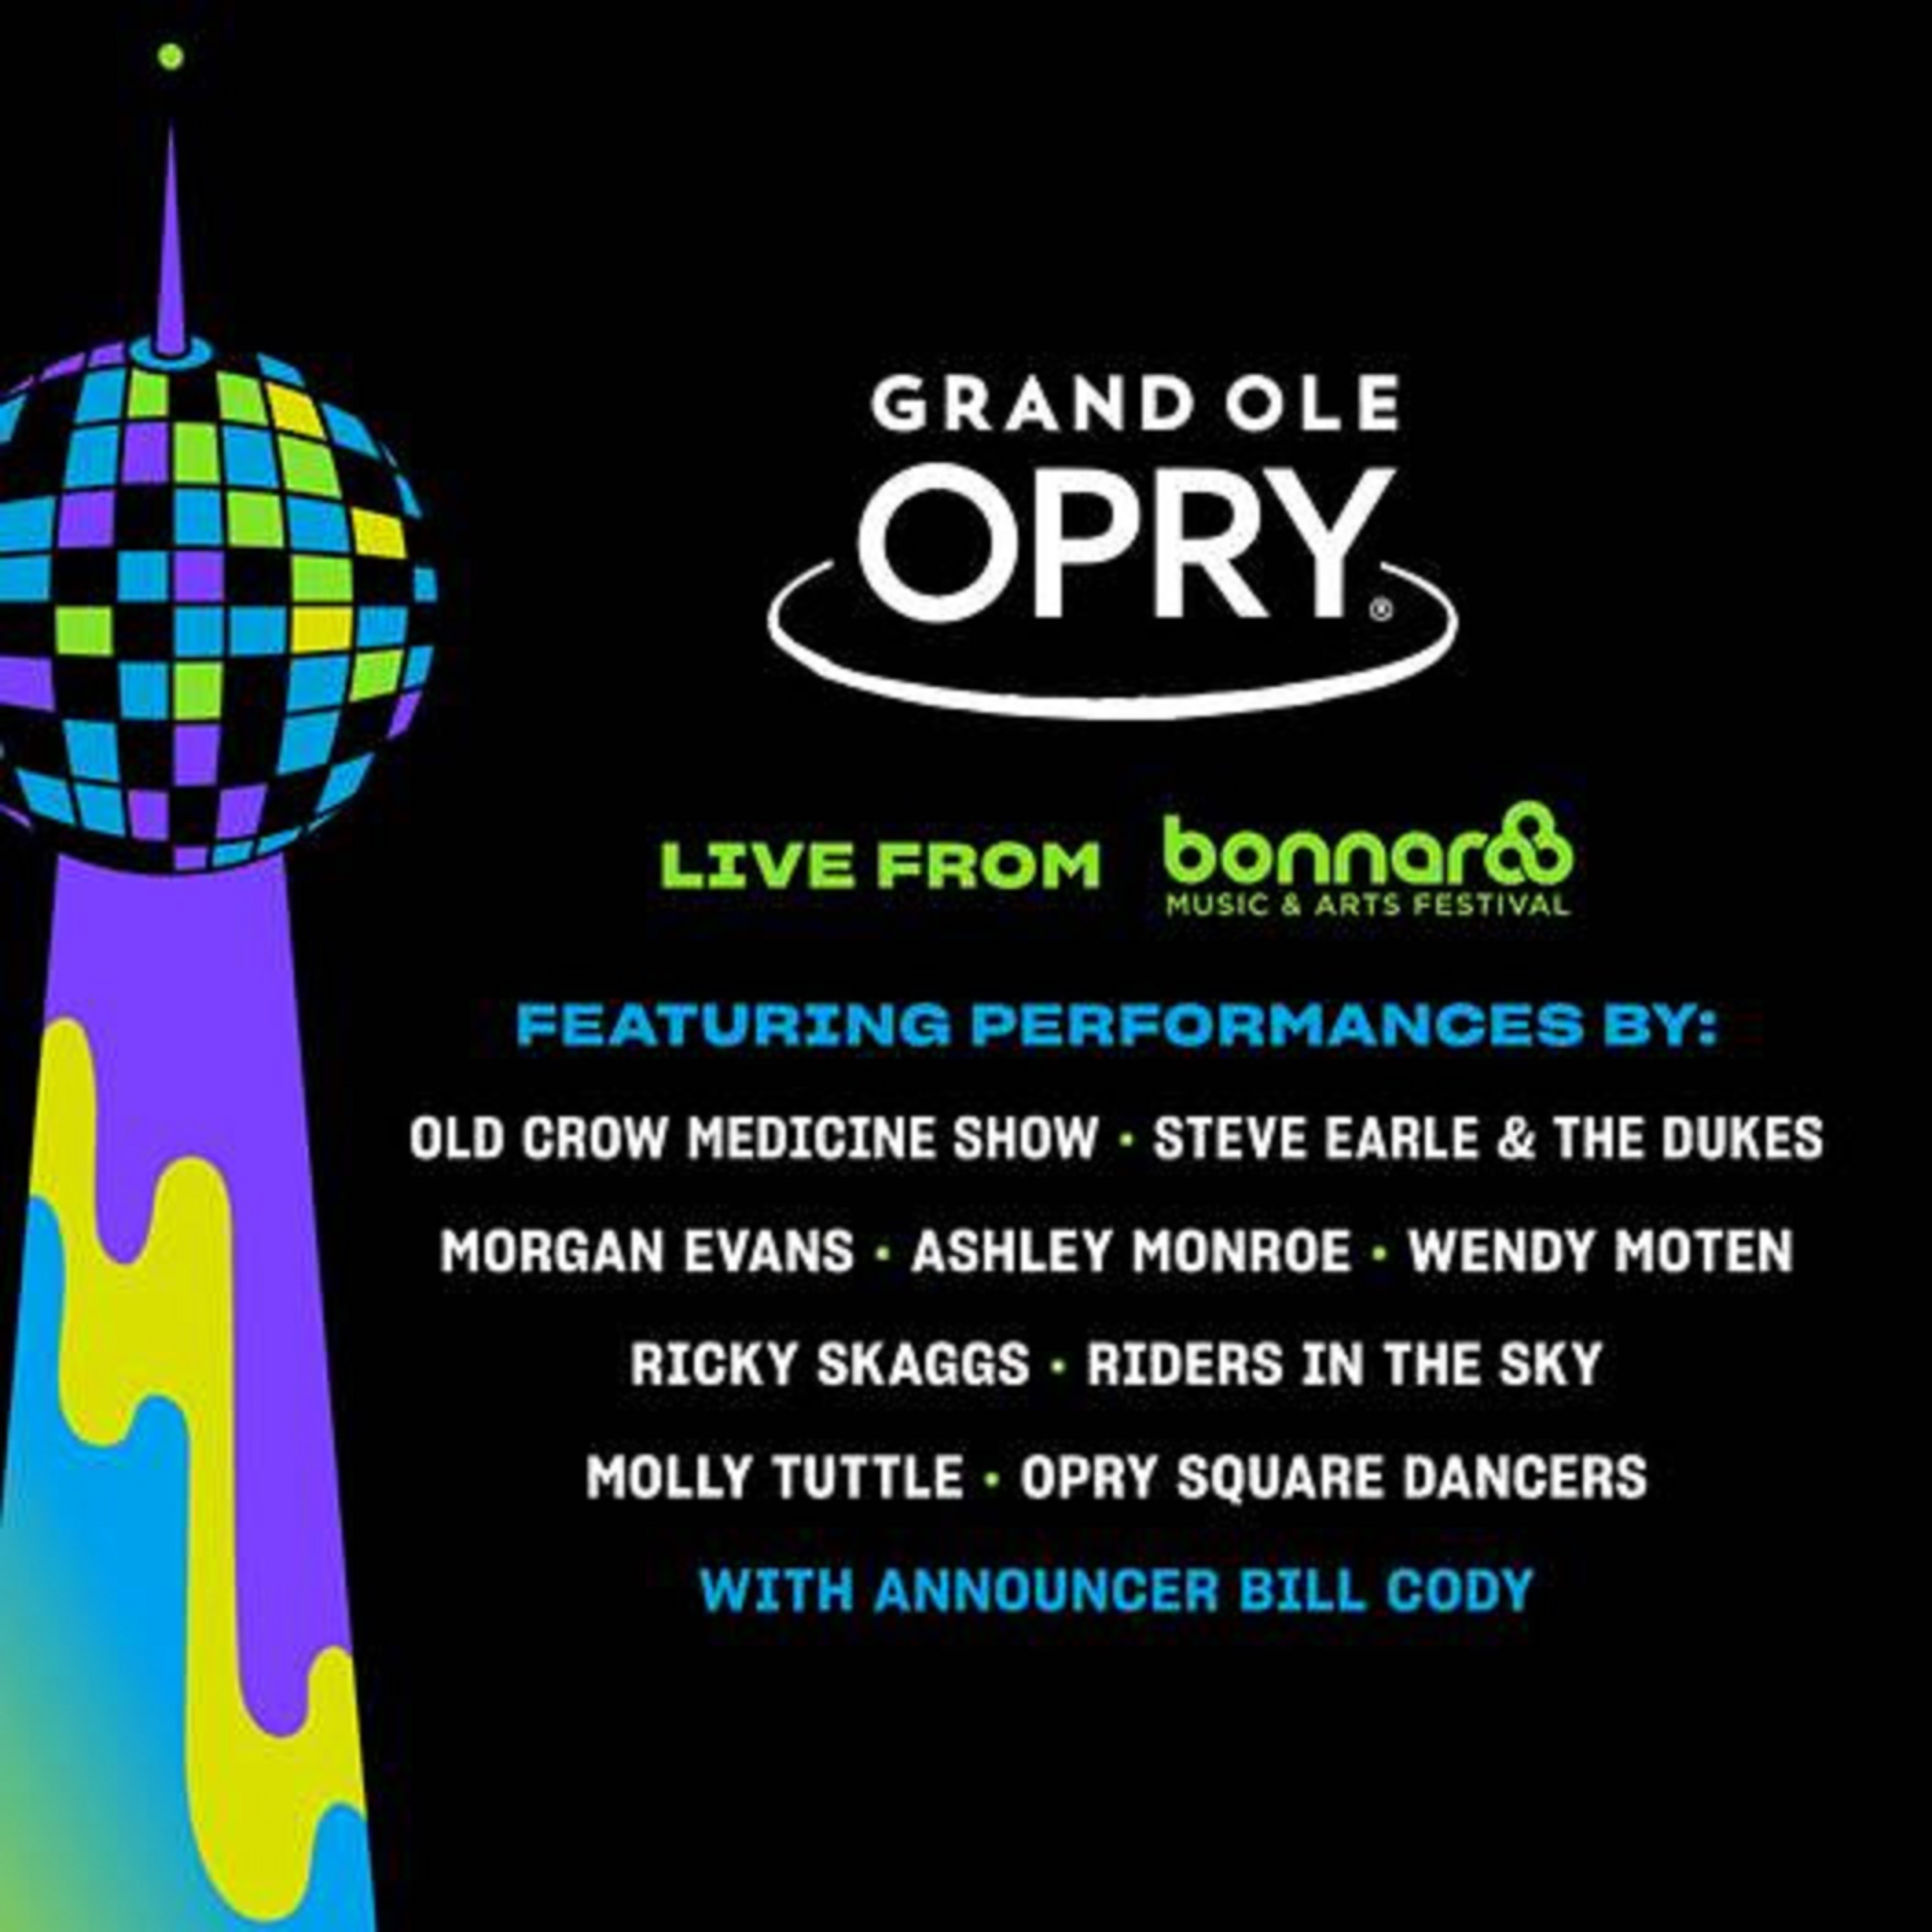 Grand Ole Opry returns to Bonnaroo 2019